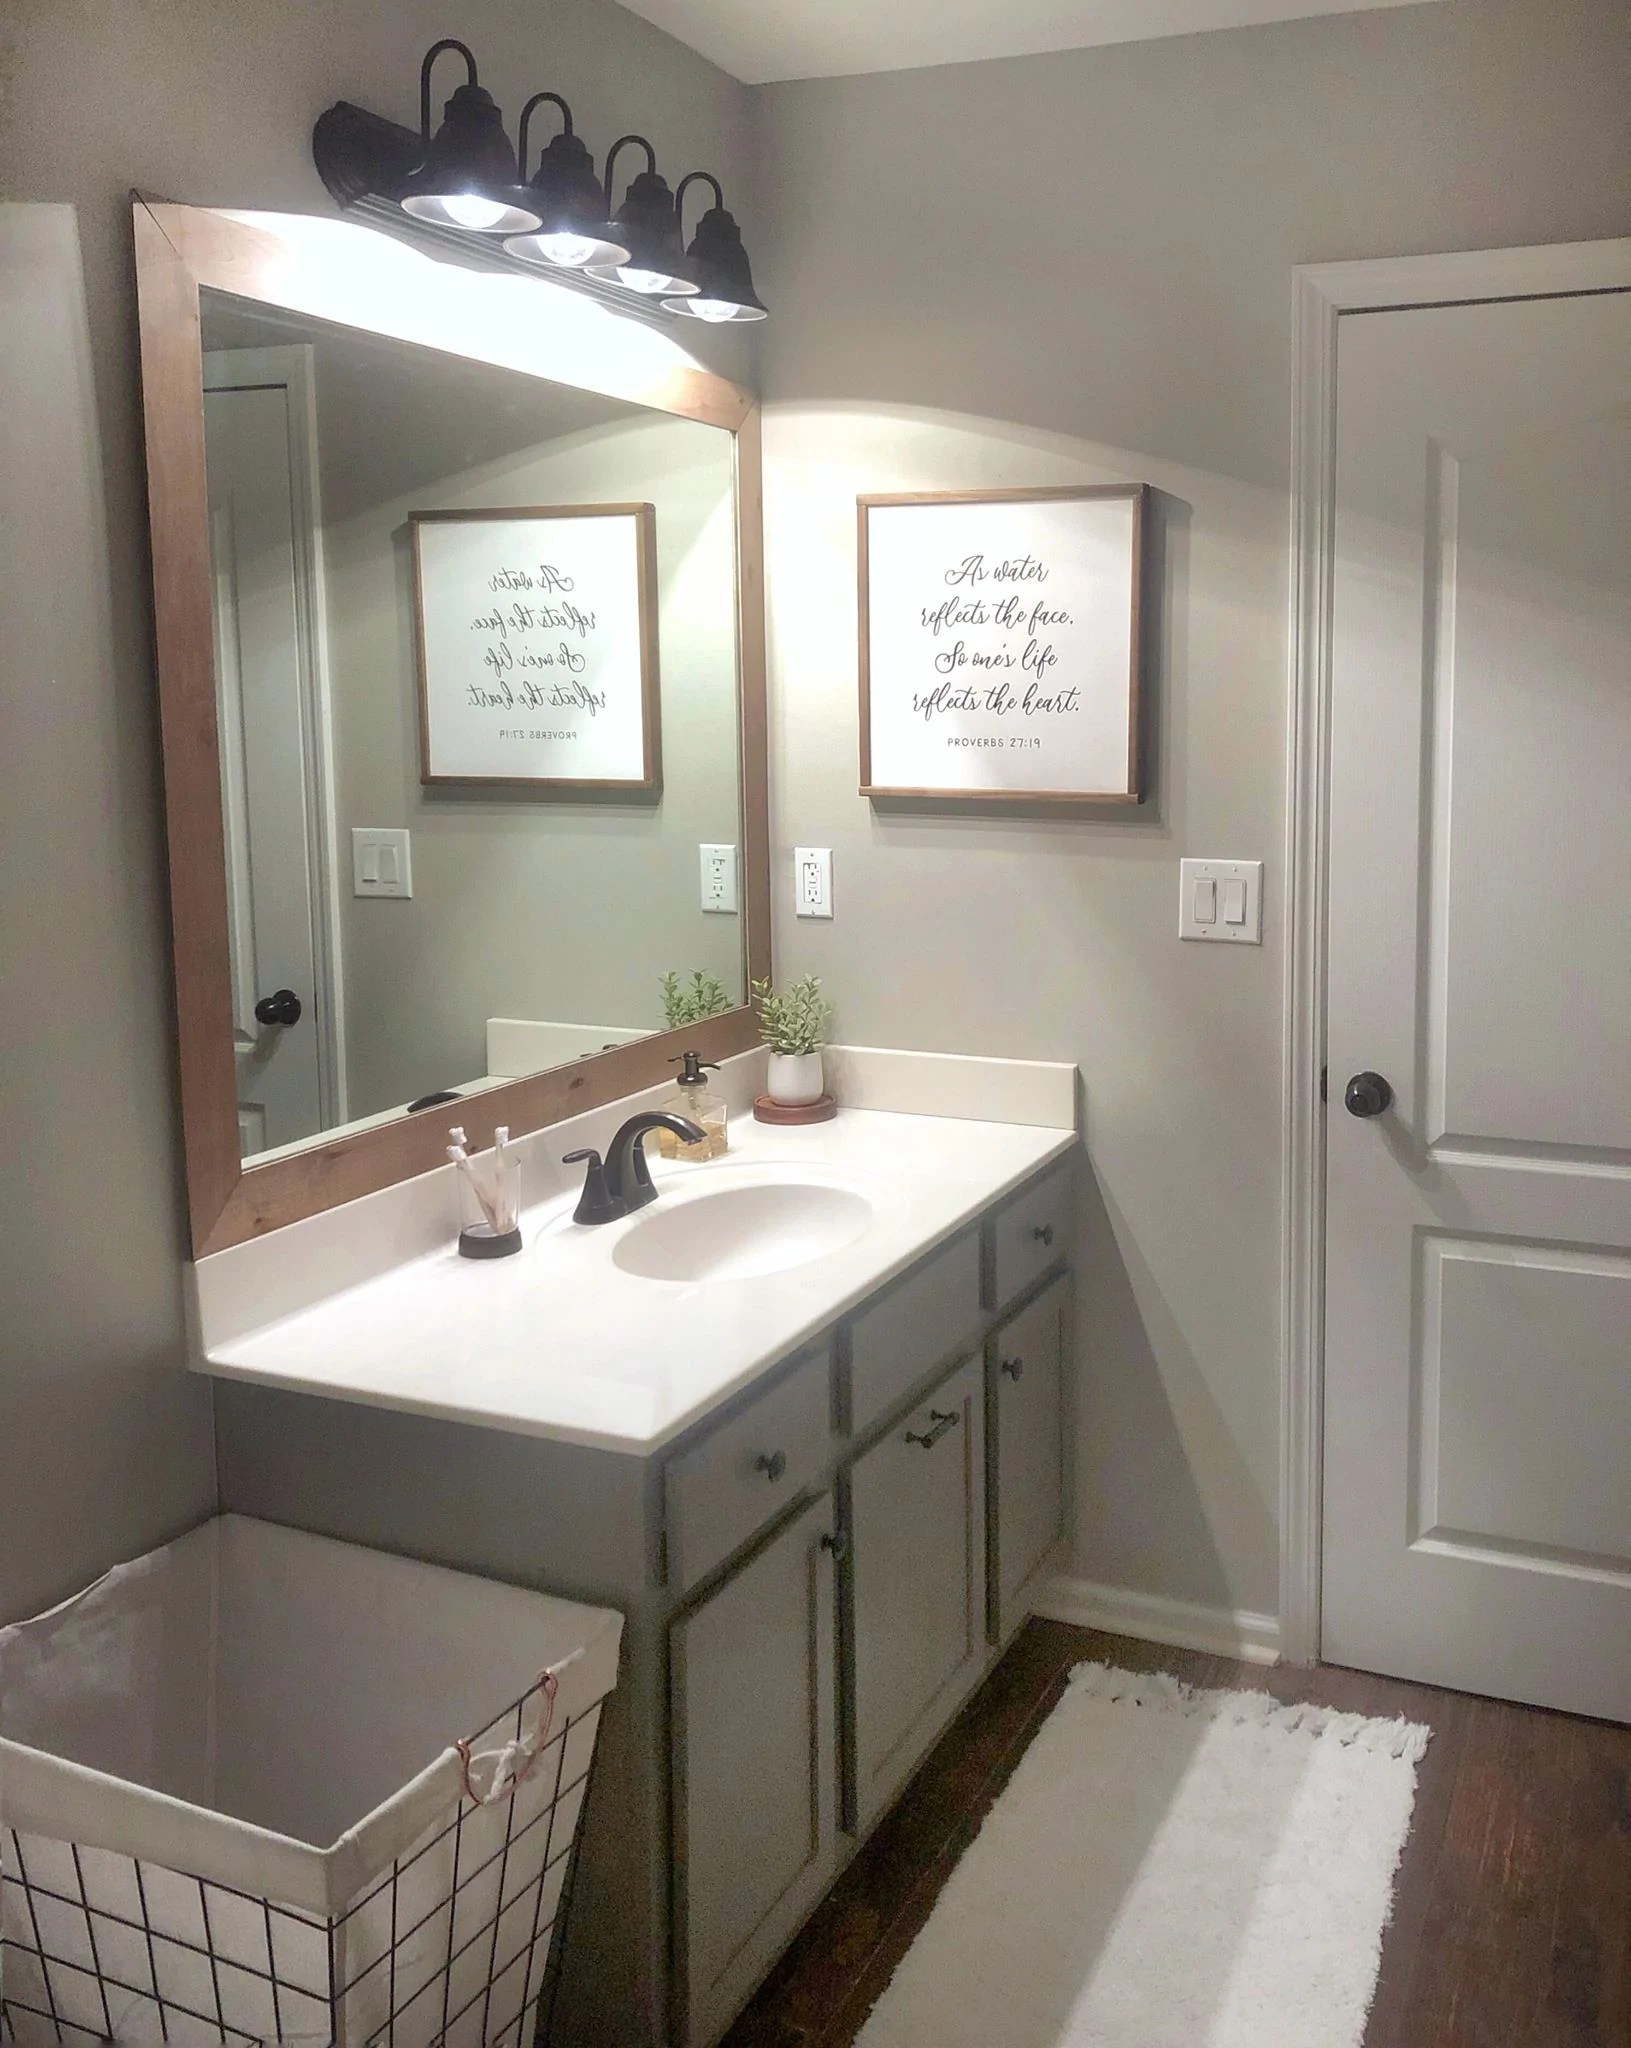 A Cheap Easy Way To Update A Builder Grade Mirror Diy By Ellison Made